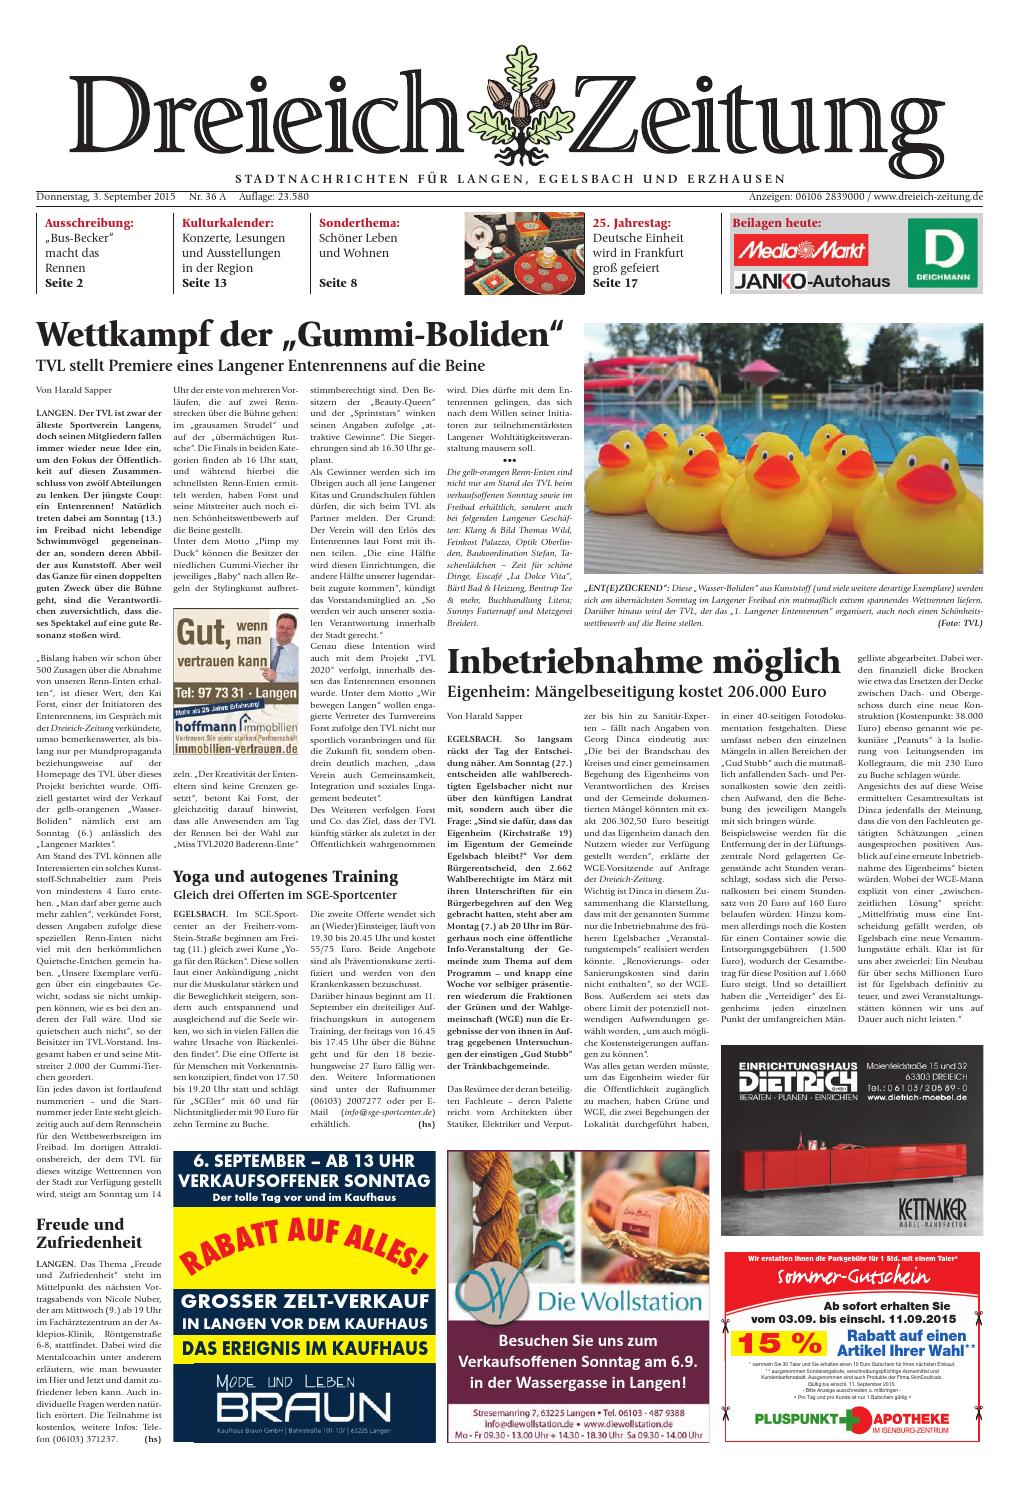 Dz online 036 15 a by Dreieich Zeitung fenbach Journal issuu